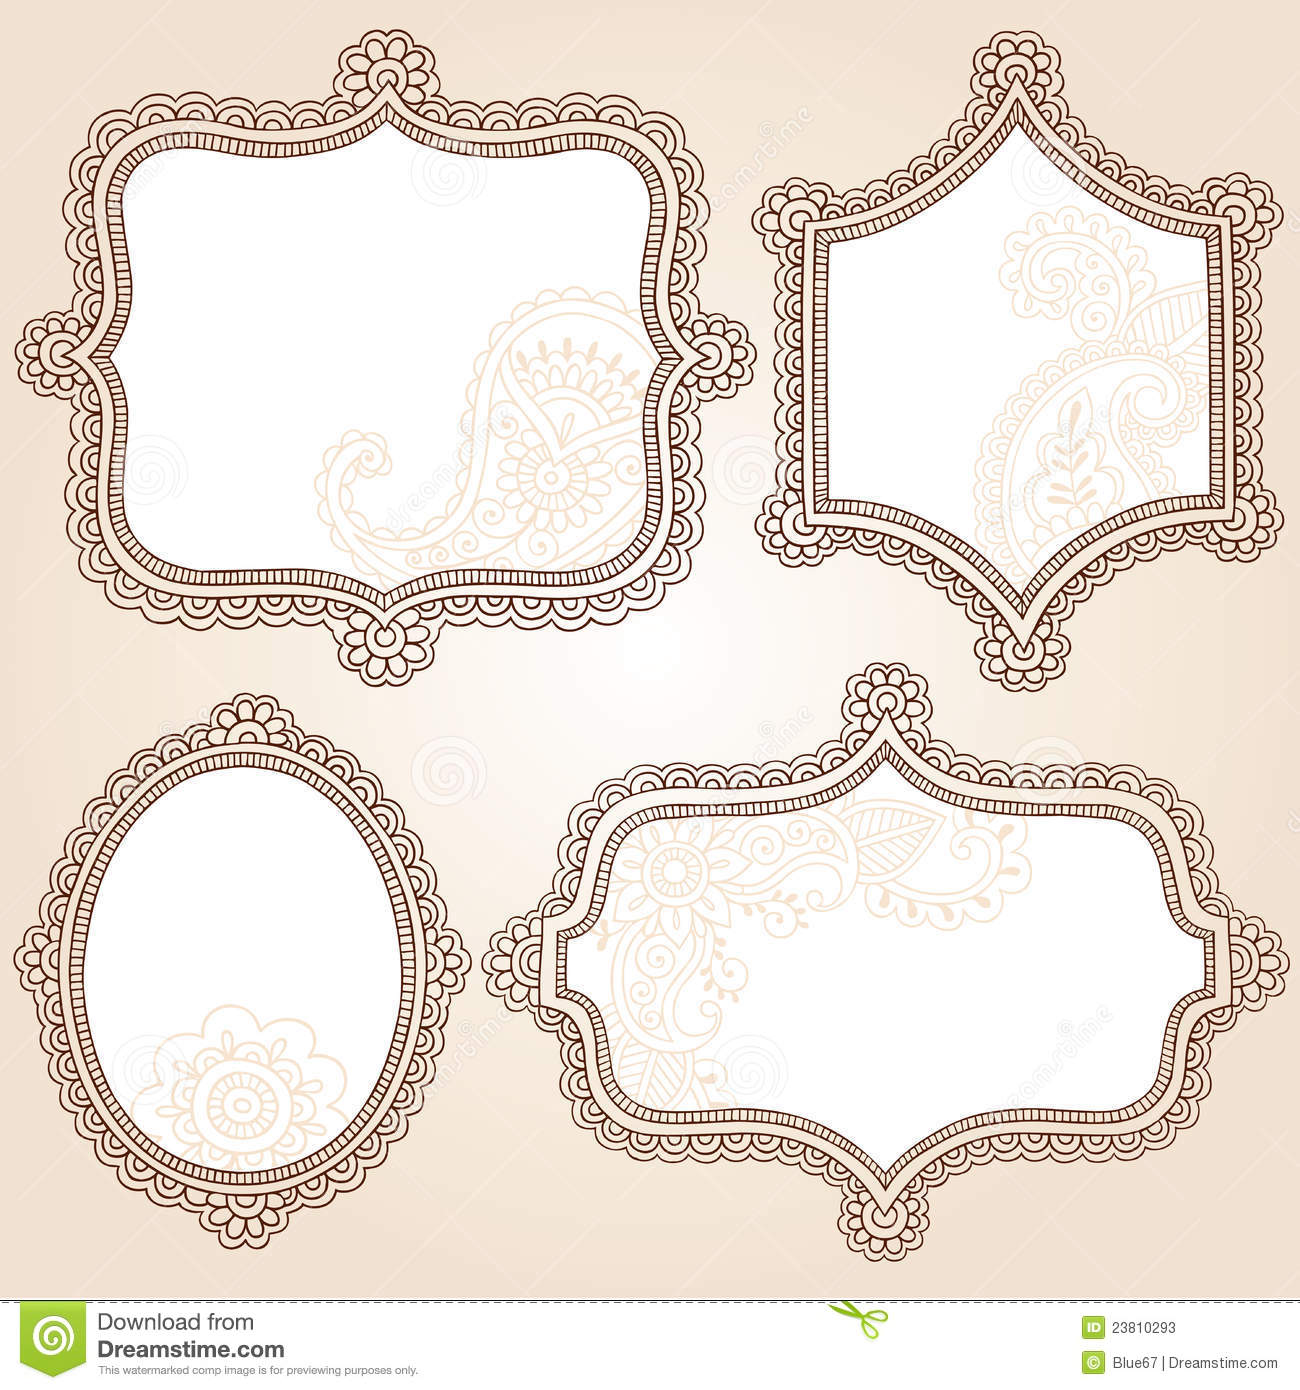 simple frame tattoo. Plain Simple Download Henna Tattoo Flower Frames Doodle Vector Design Stock   Illustration Of Scroll Ornamental And Simple Frame